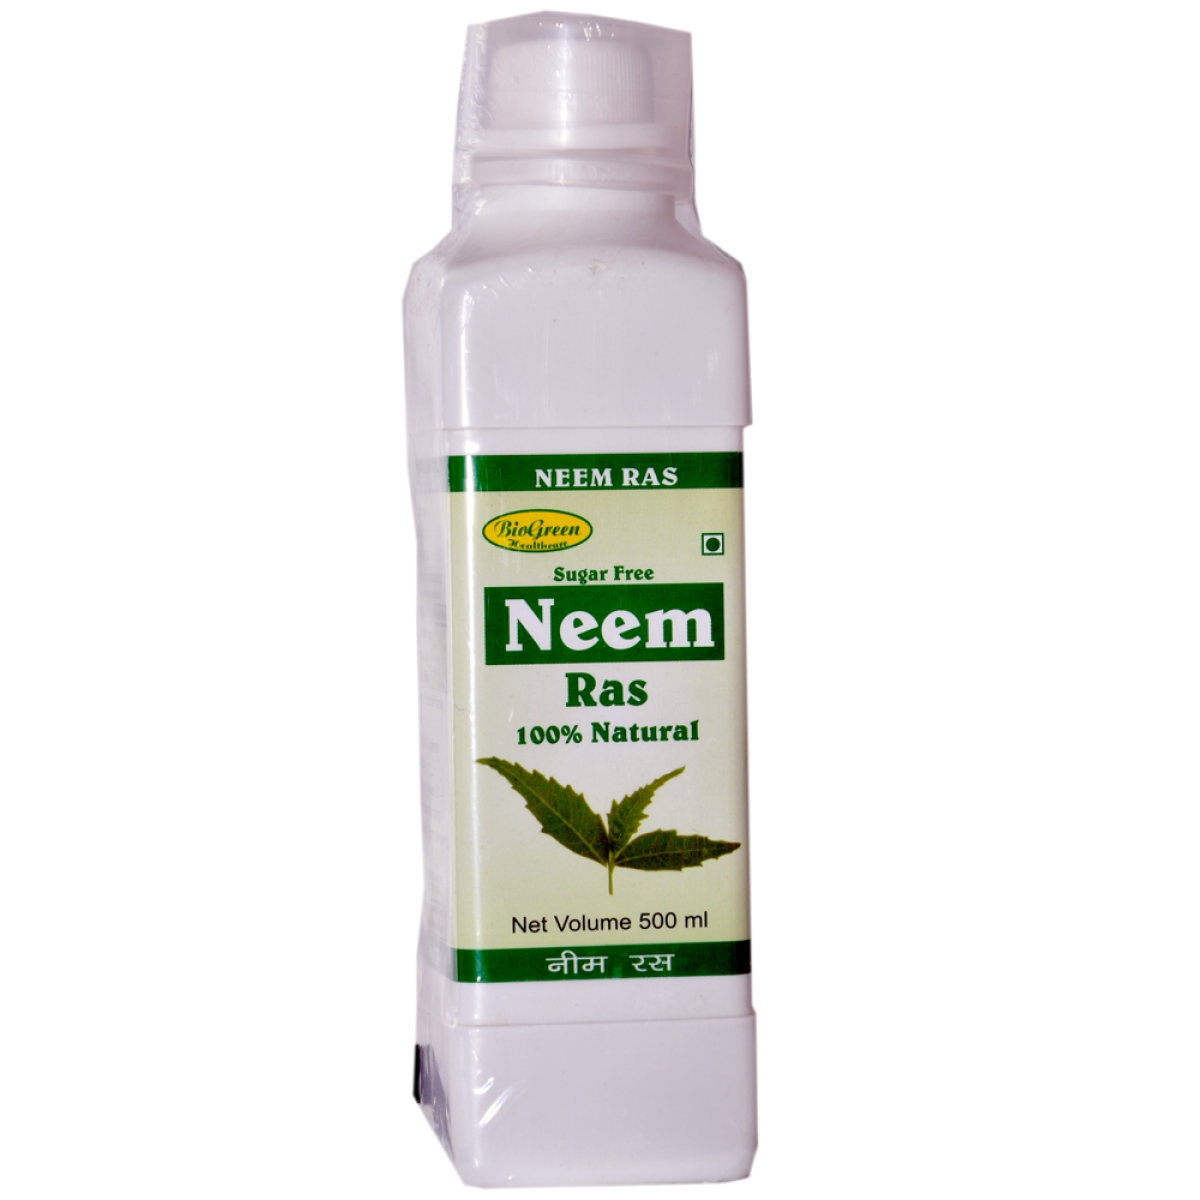 Neem Ras In Puducherry